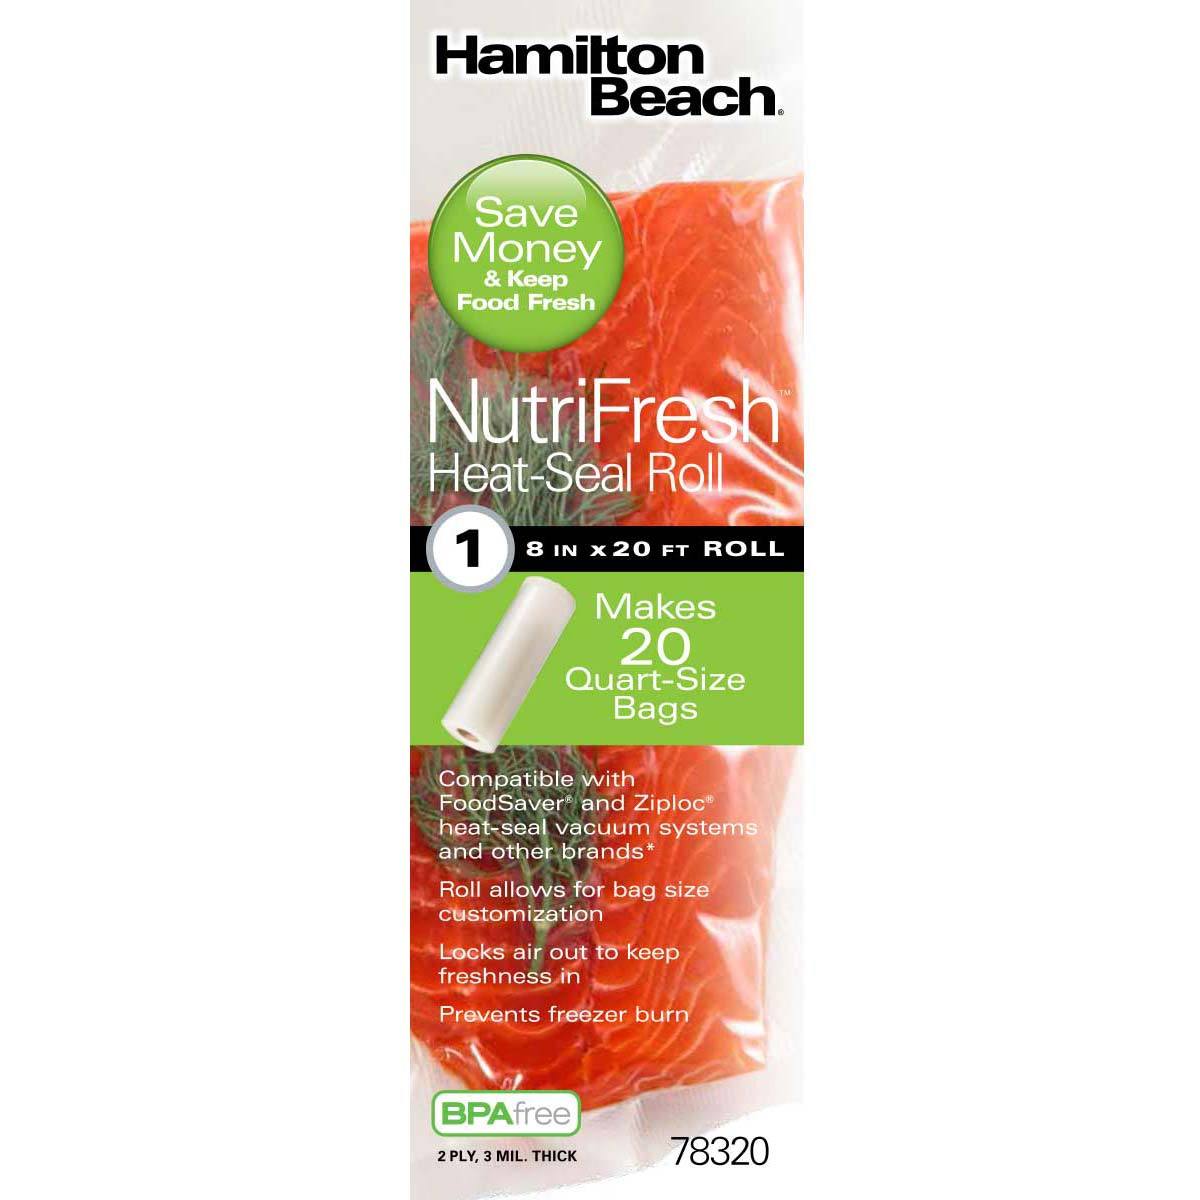 NutriFresh™ 8 in x 20 ft Heat-Seal Rolls, 1 Pack (78320)